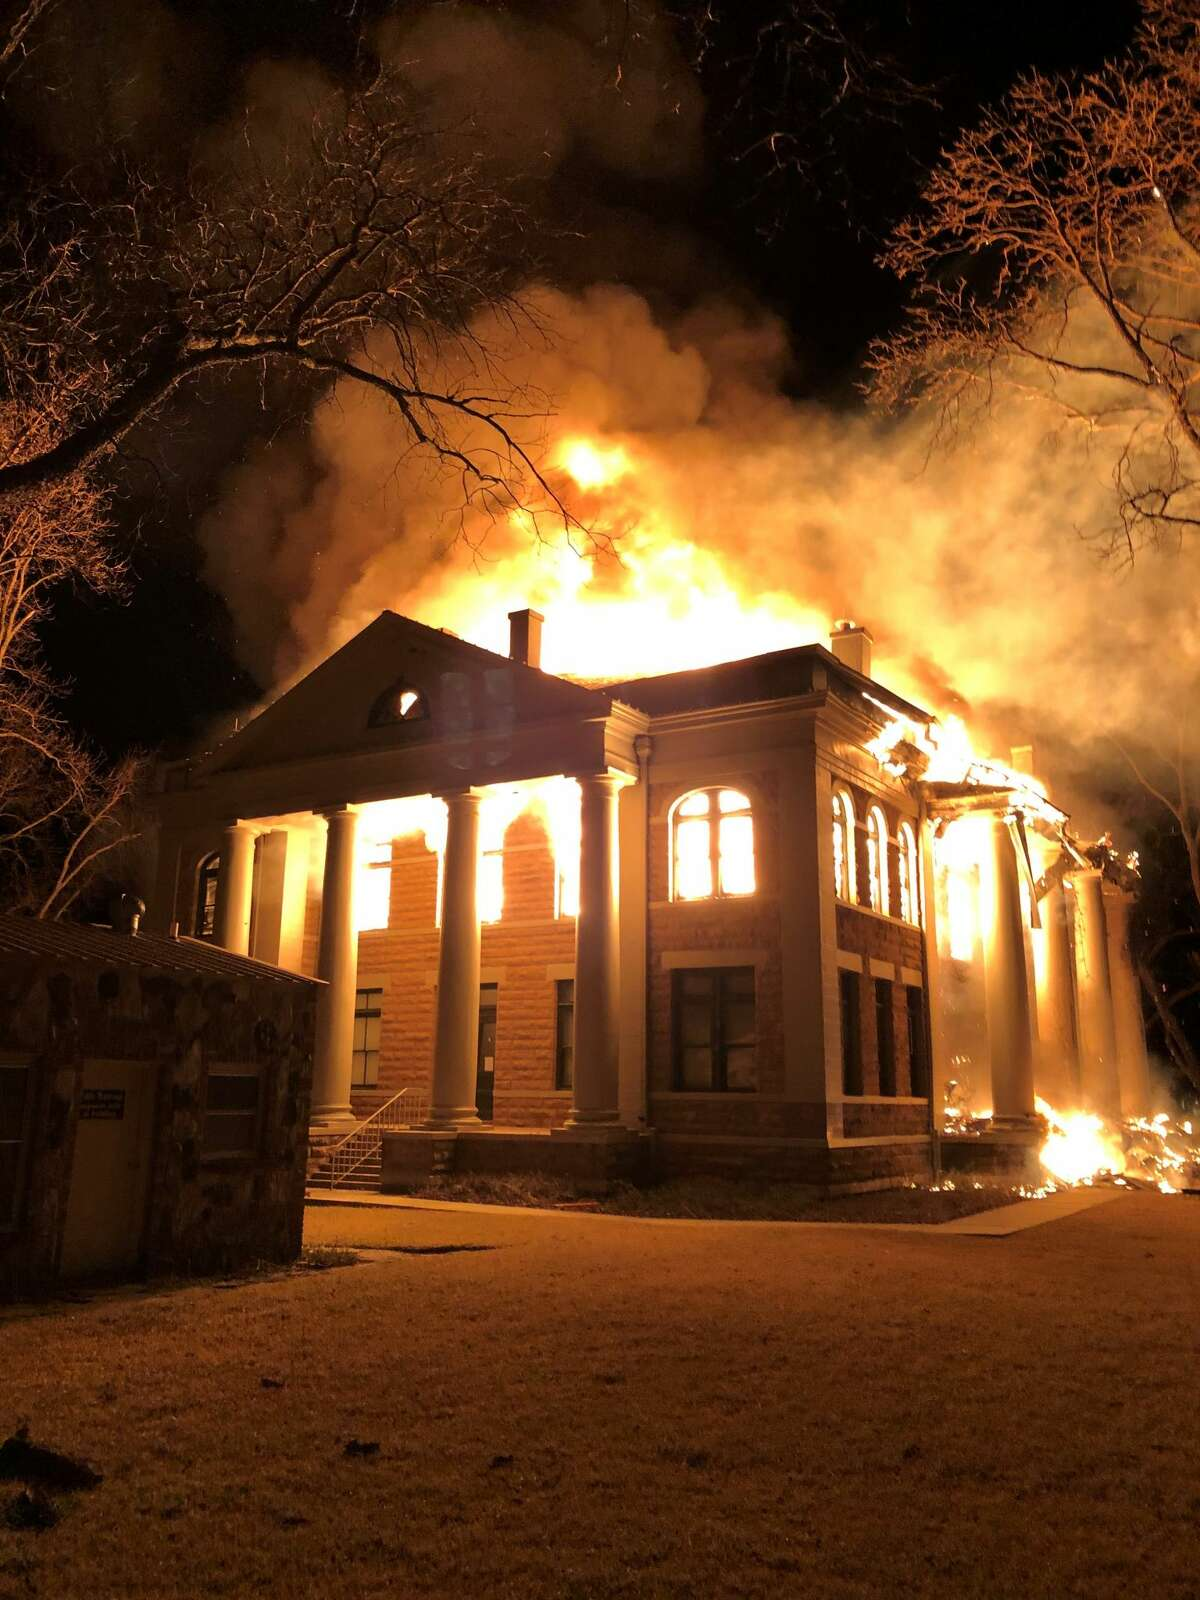 The Mason County Courthouse burned to ruins after it erupted into flames around 10:15 p.m.